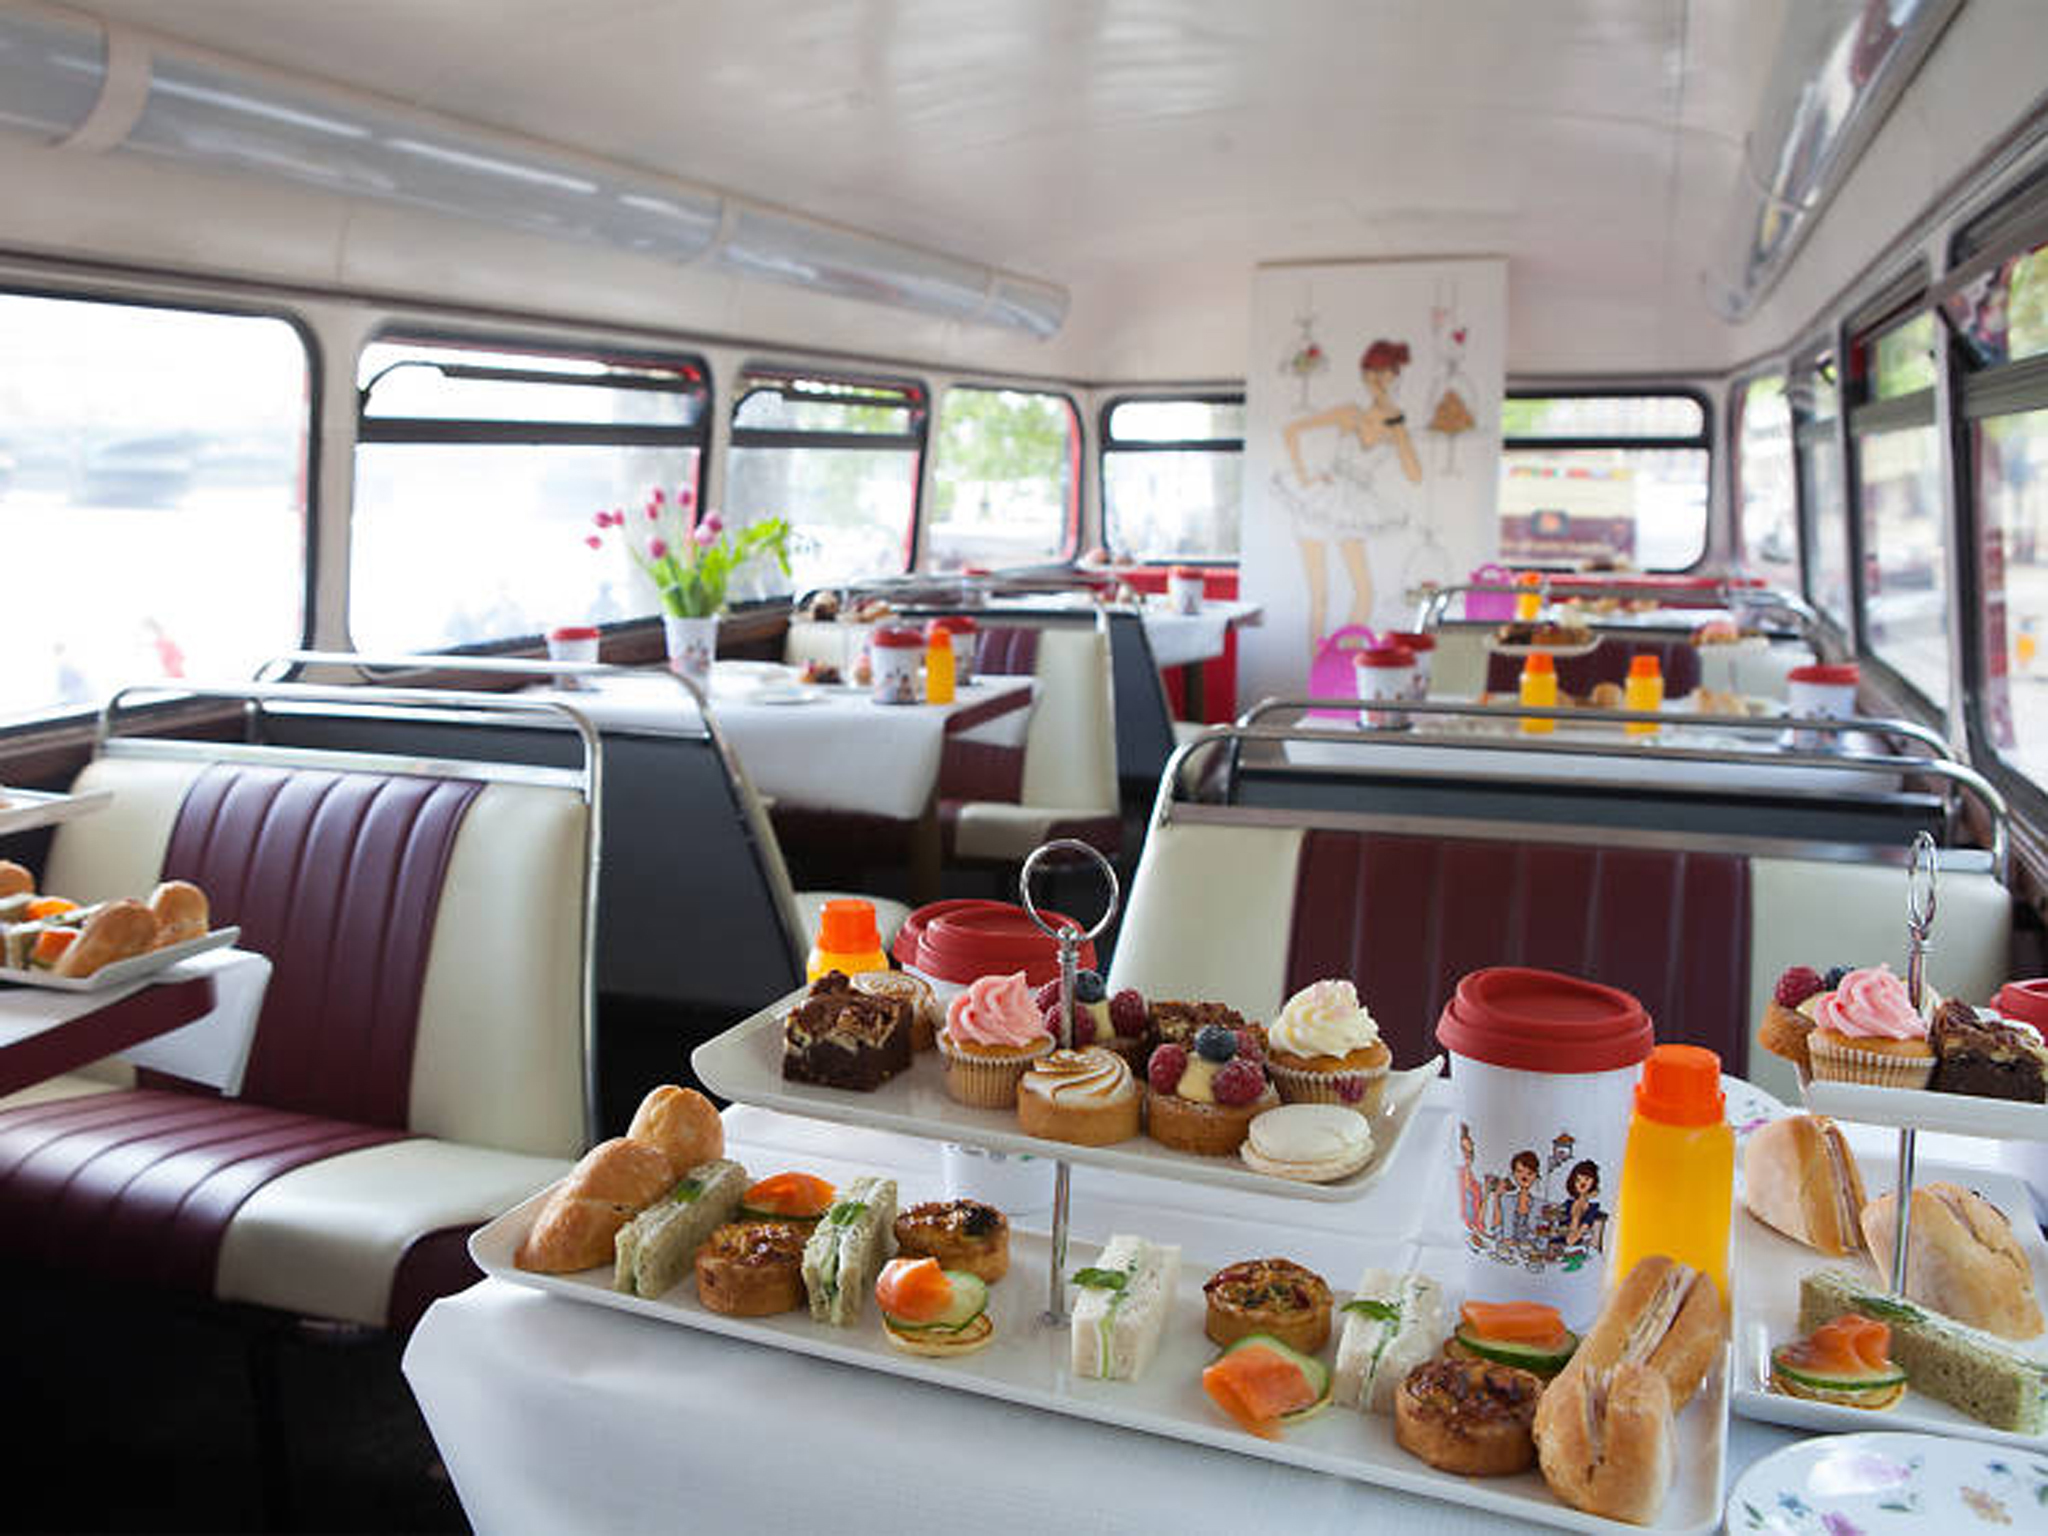 Afternoon tea in London, bb bakery, vintage bus tea